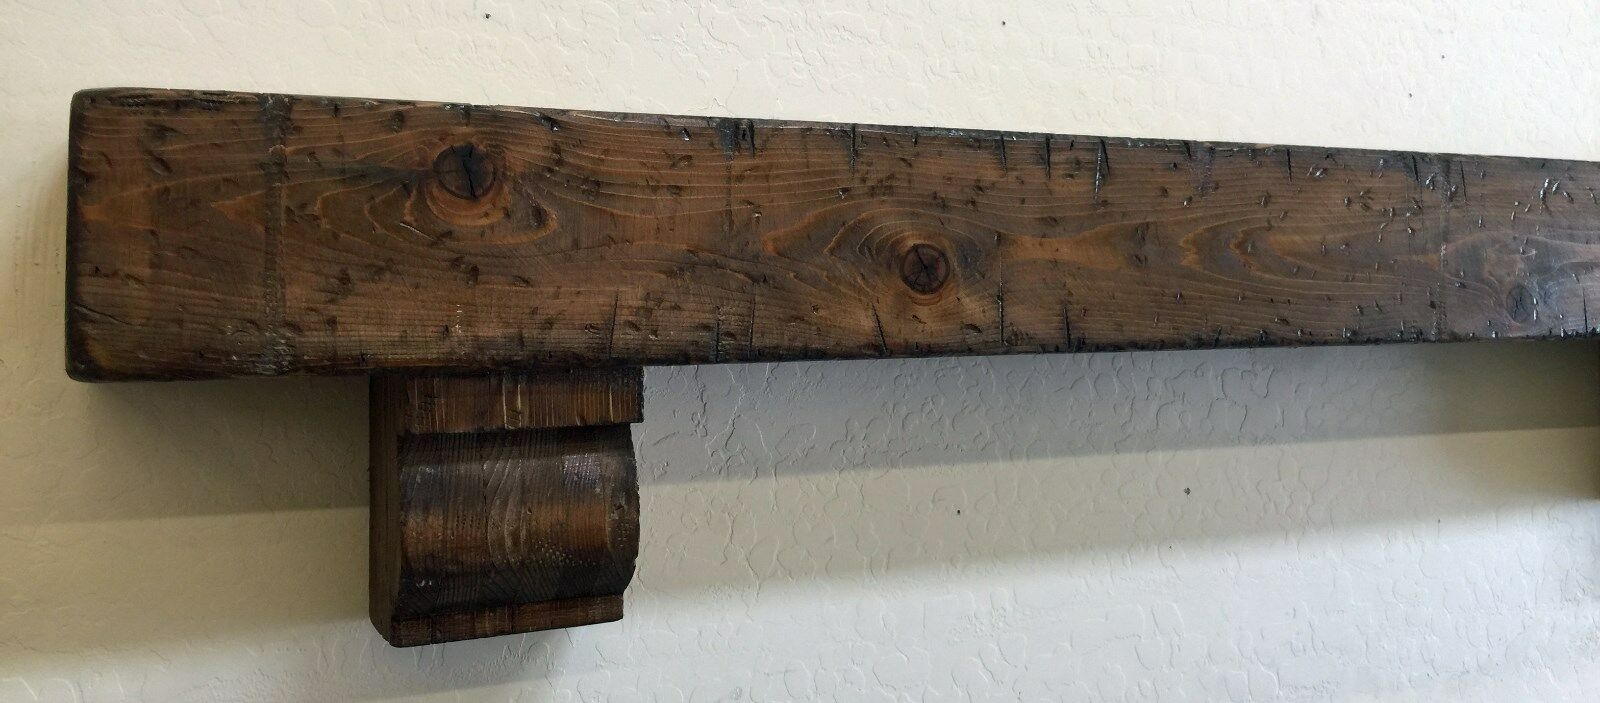 Rustic Fireplace Mantle,Wood Beam Mantle with corbels,Rustic Mantle,36 inches